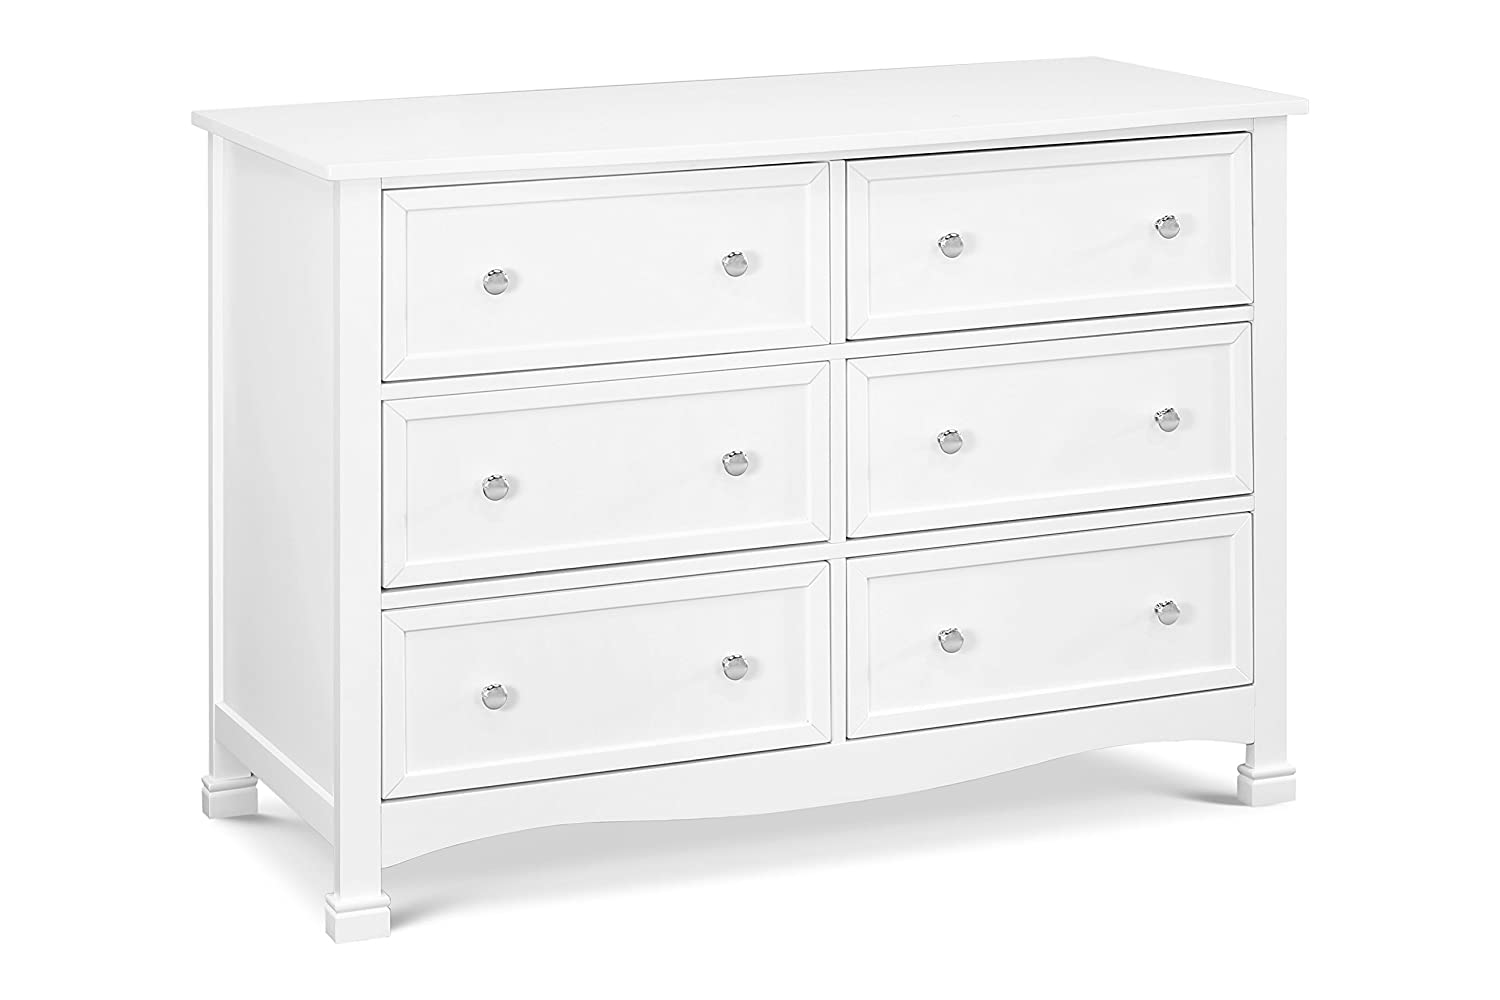 DaVinci Kalani 6 Drawer Double Wide Dresser, White M5529W